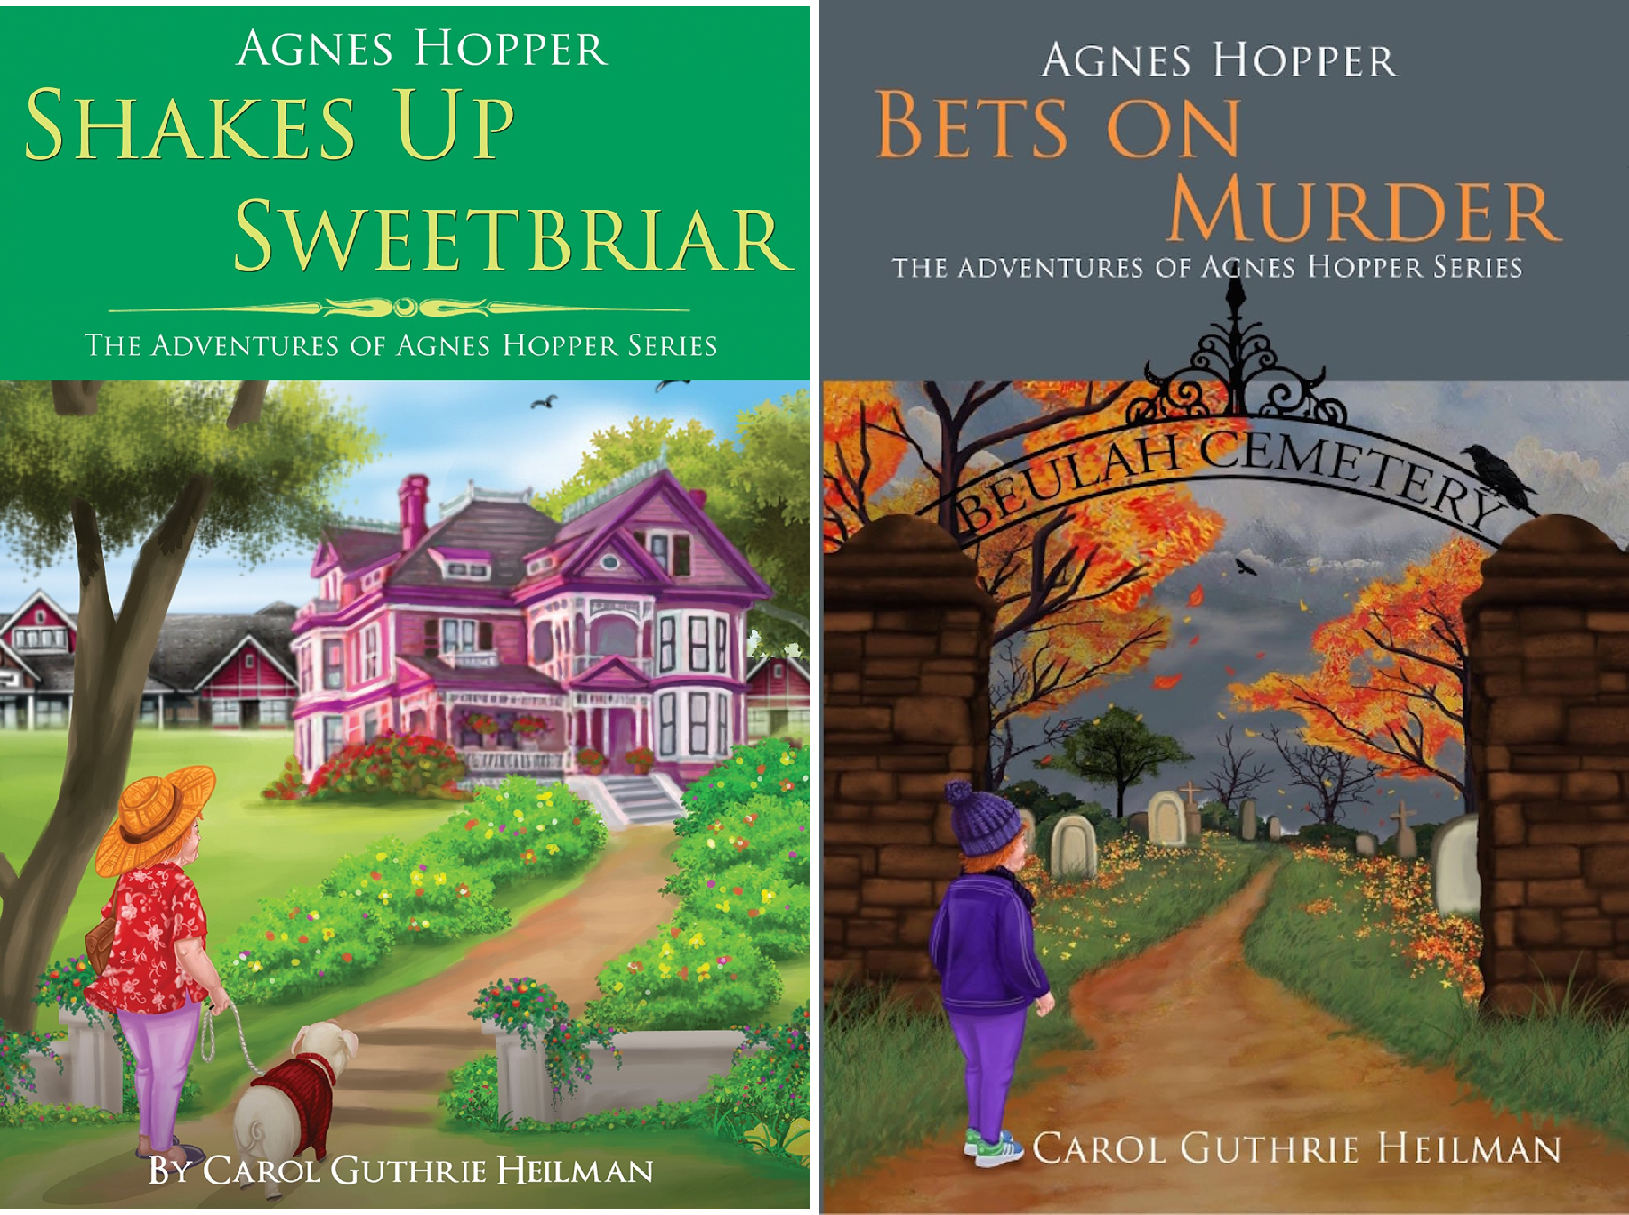 The Adventures of Agnes Hopper Series (2 Book Series)